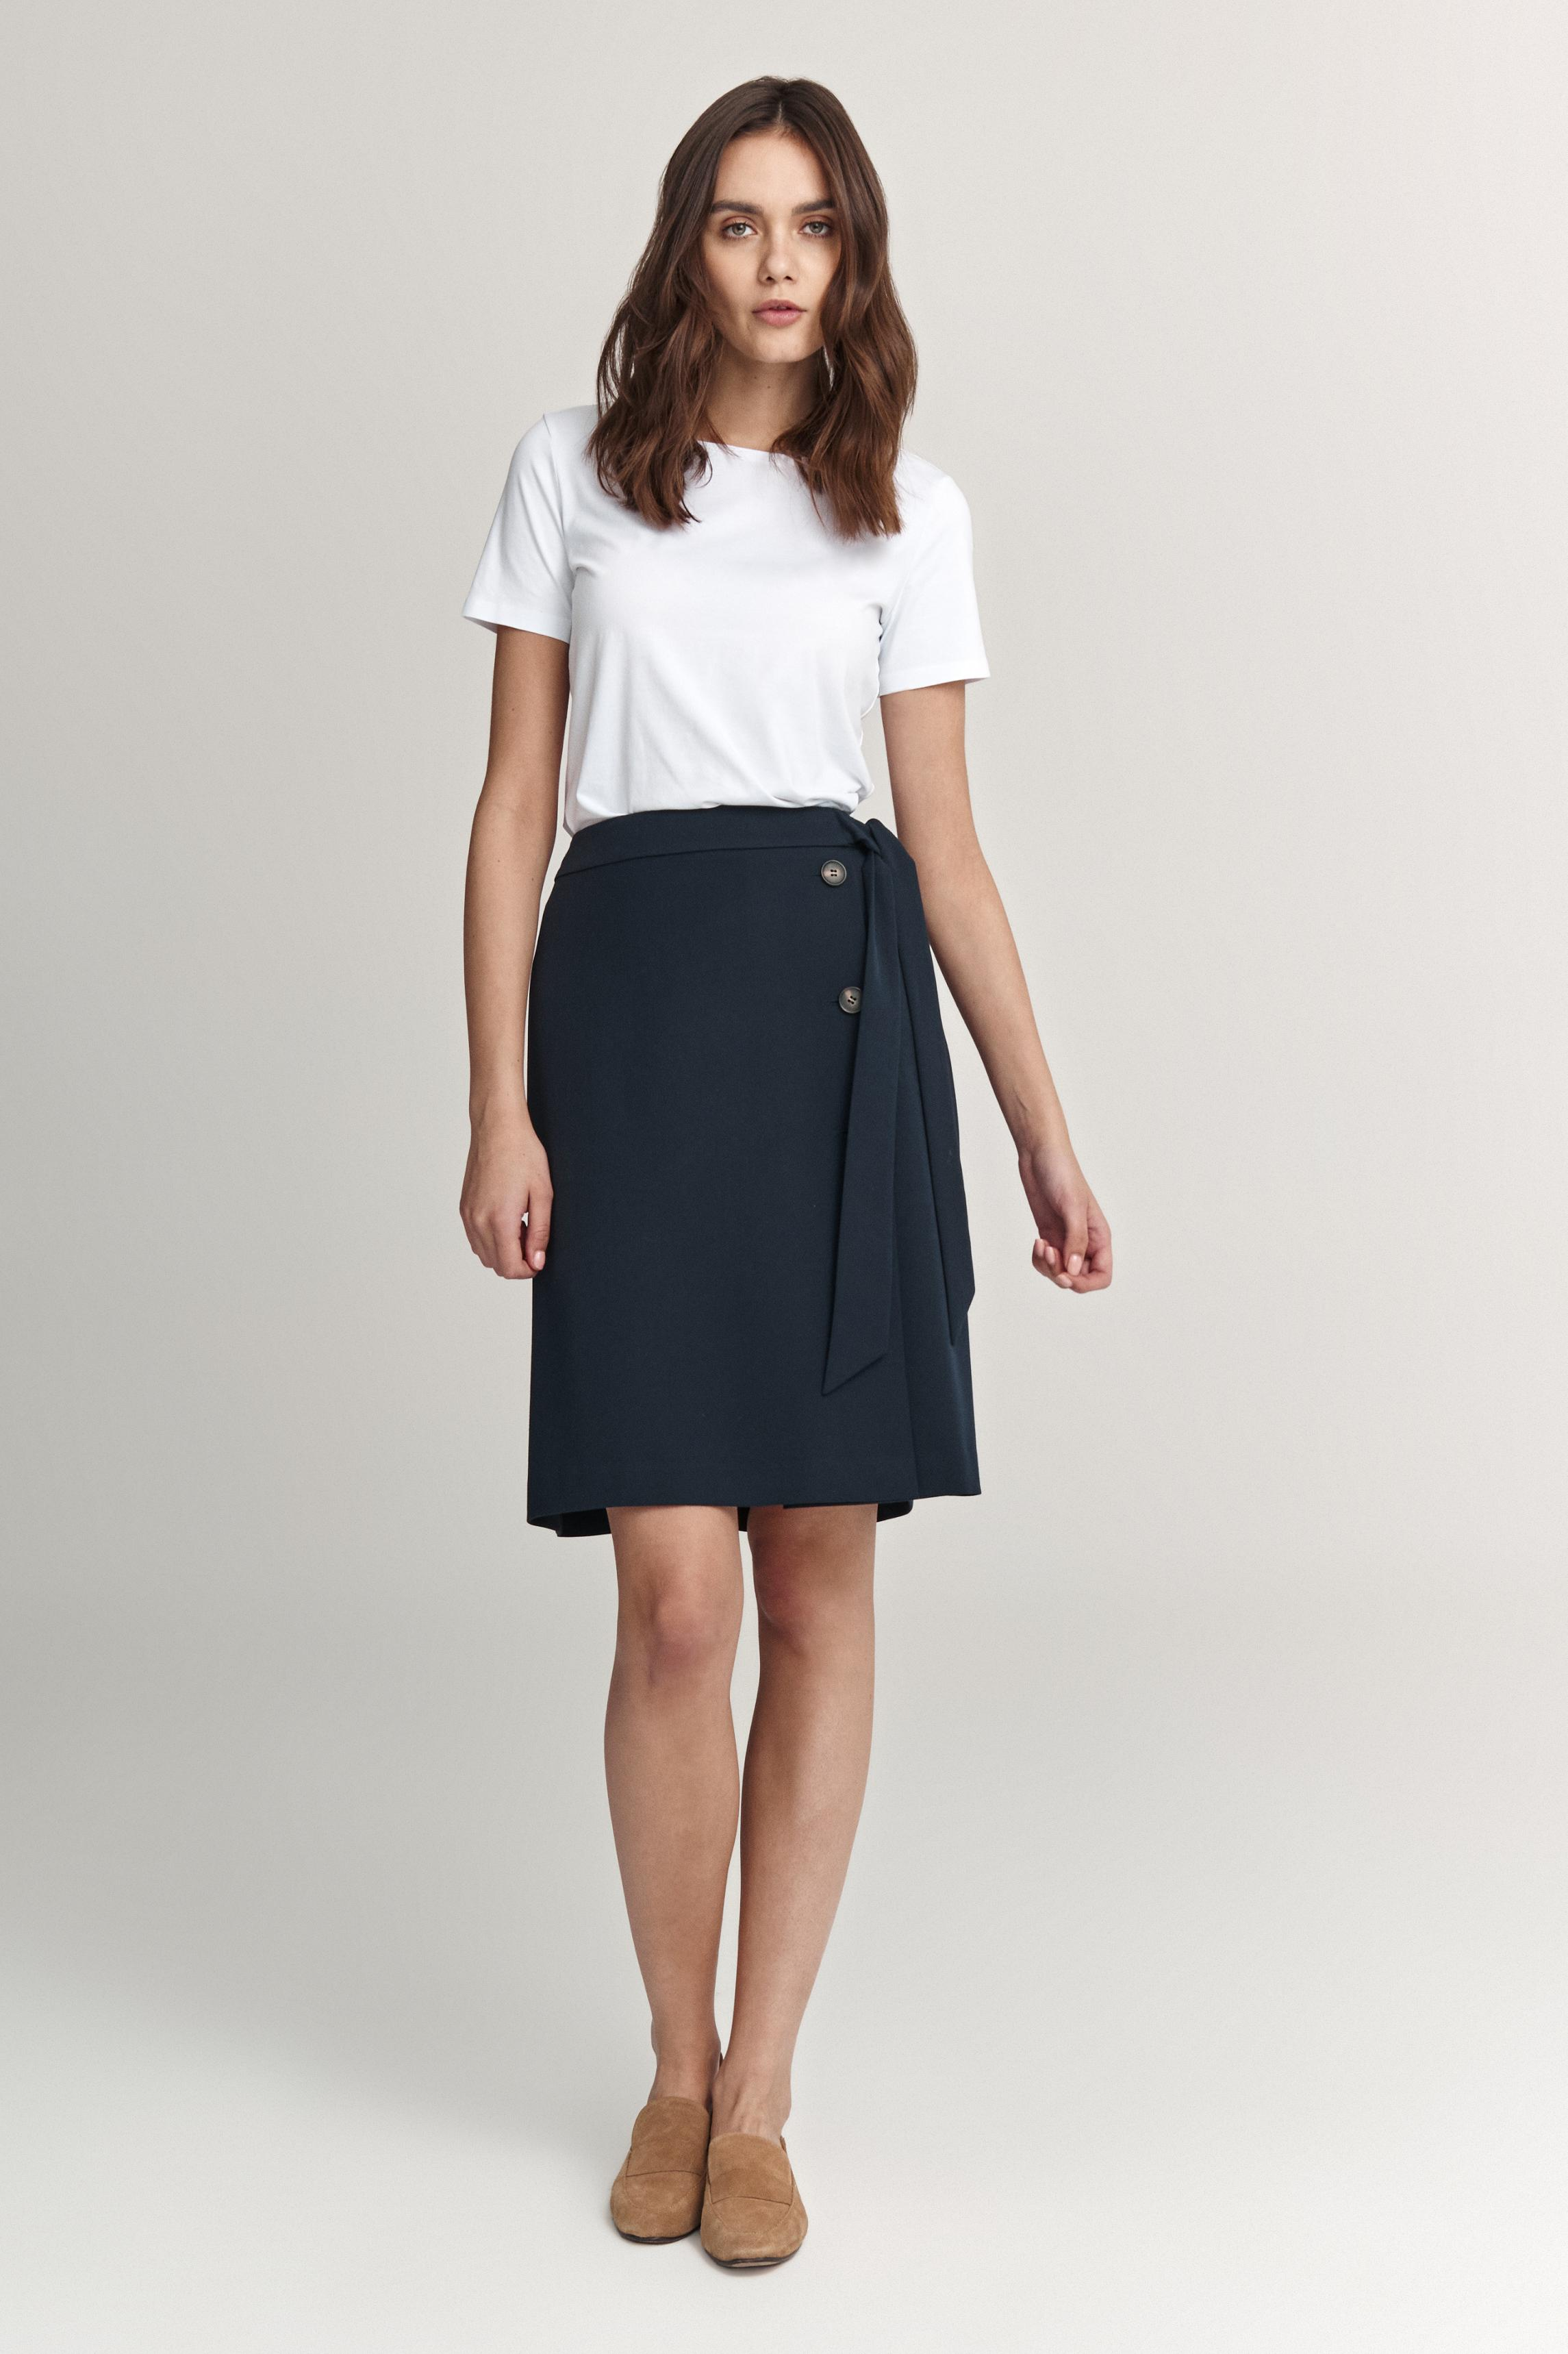 SKIRT WITH A FRILL ATOMIA